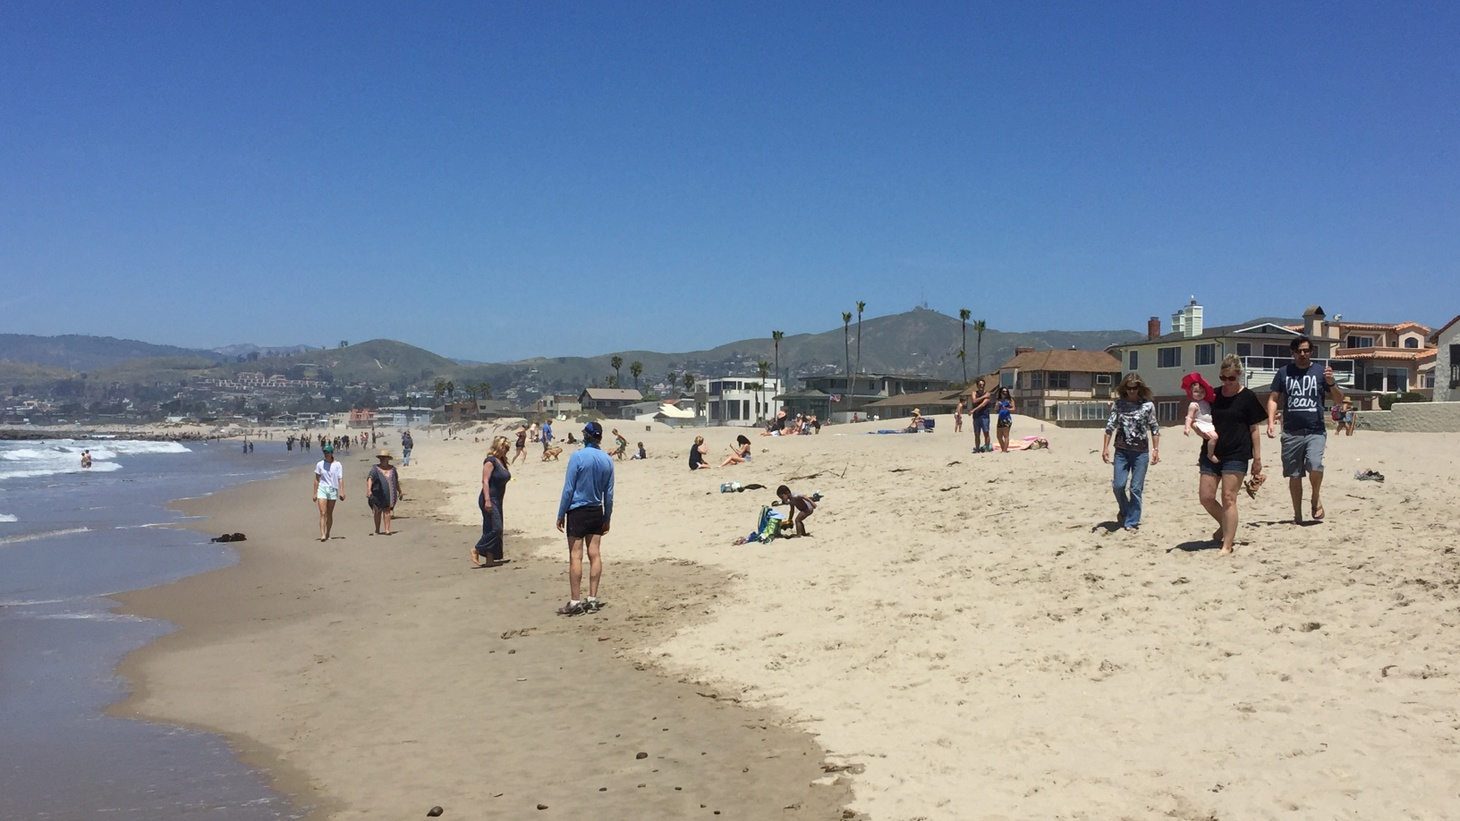 The shores along Ventura were busy Saturday afternoon, but people maintained social distance while walking around and enjoying the first summery weekend of 2020.